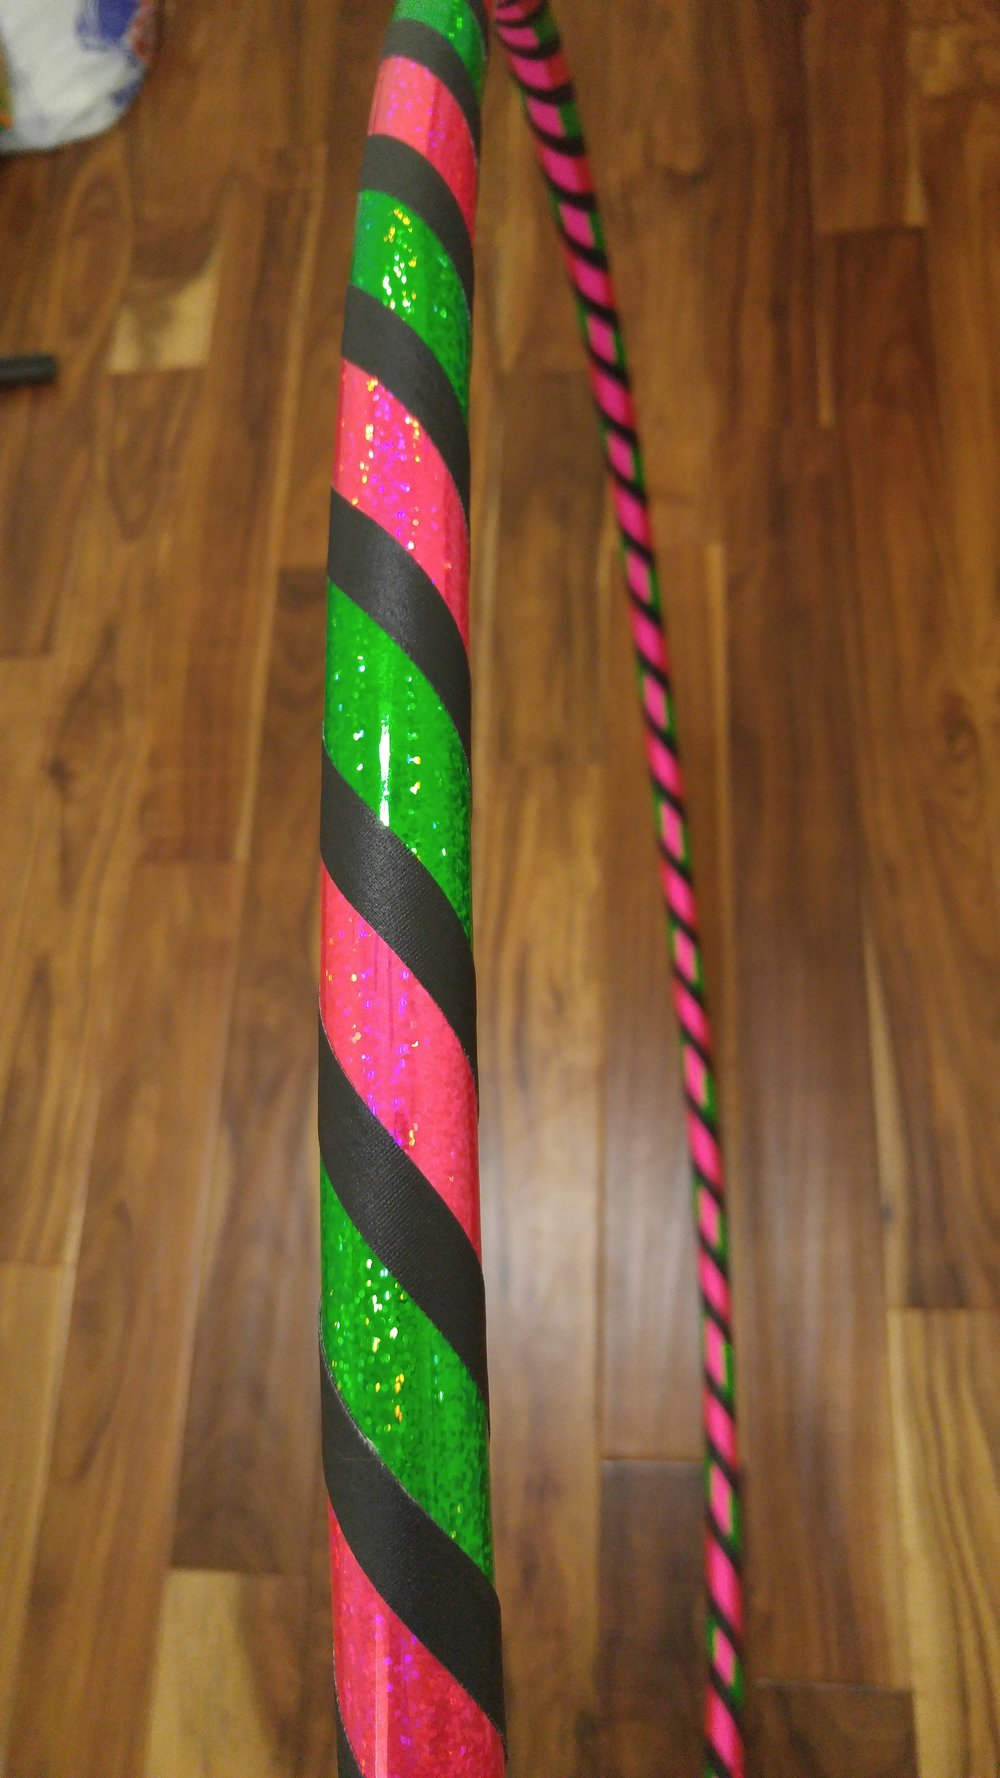 Green & Pink sparkle with black accent grip.